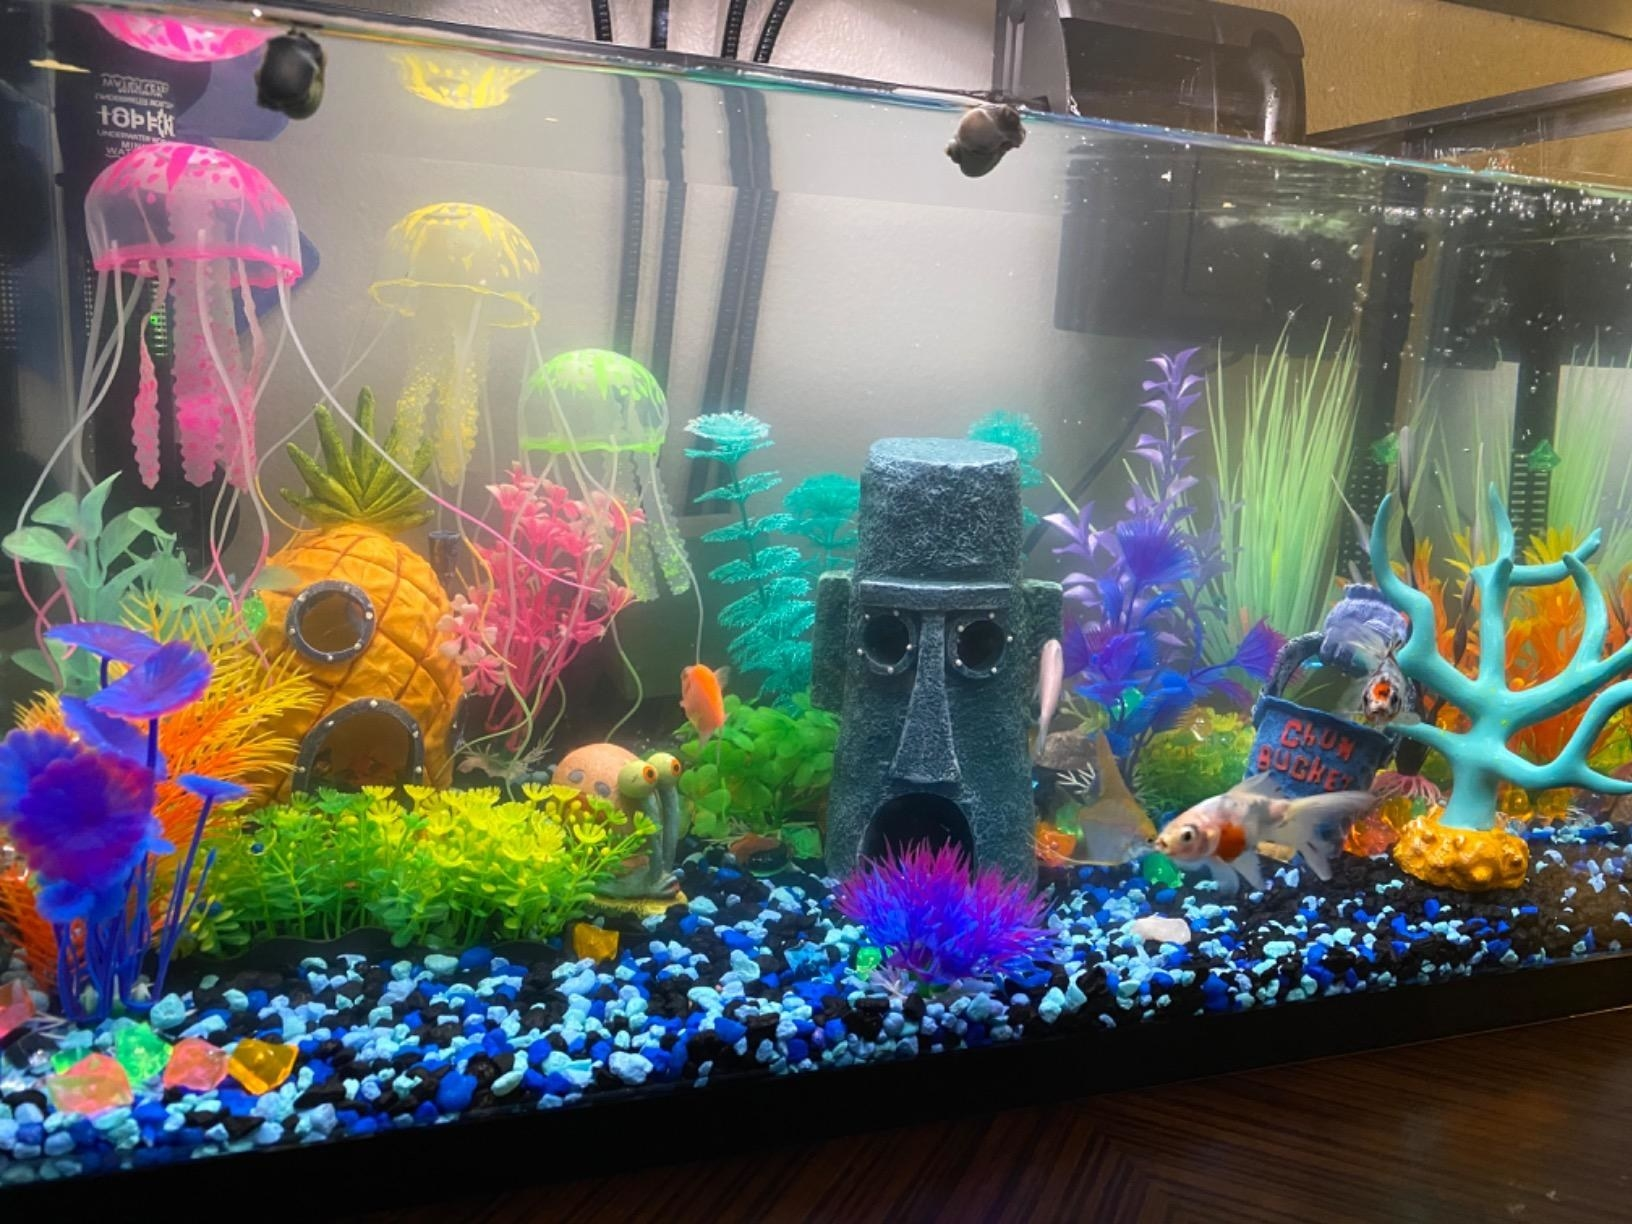 Reviewer's  tank with the artificial plants, some tank decor, and a fish